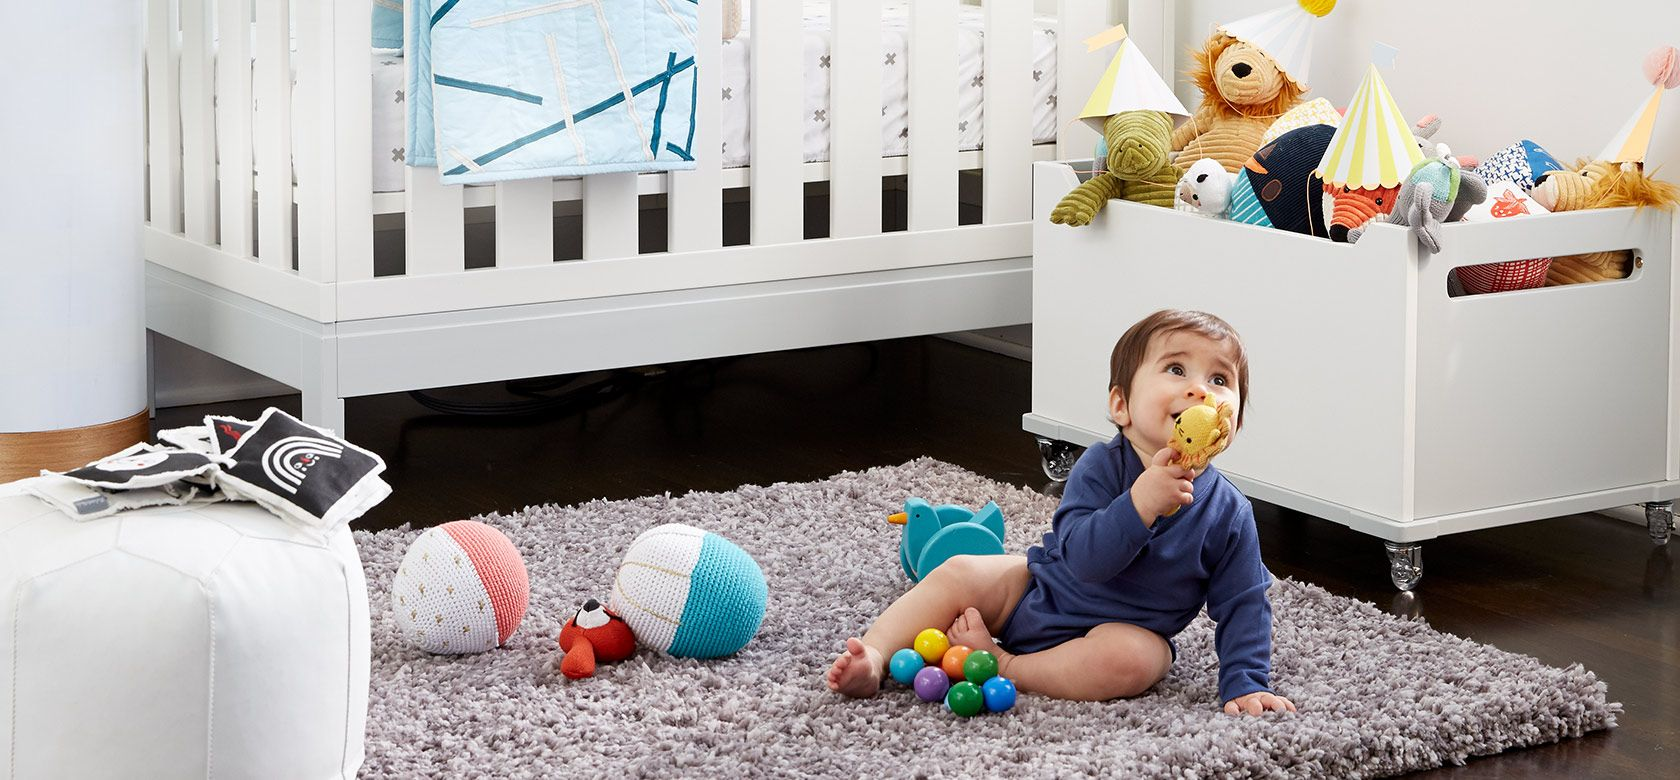 Baby playing with toys on the floor of a nursery